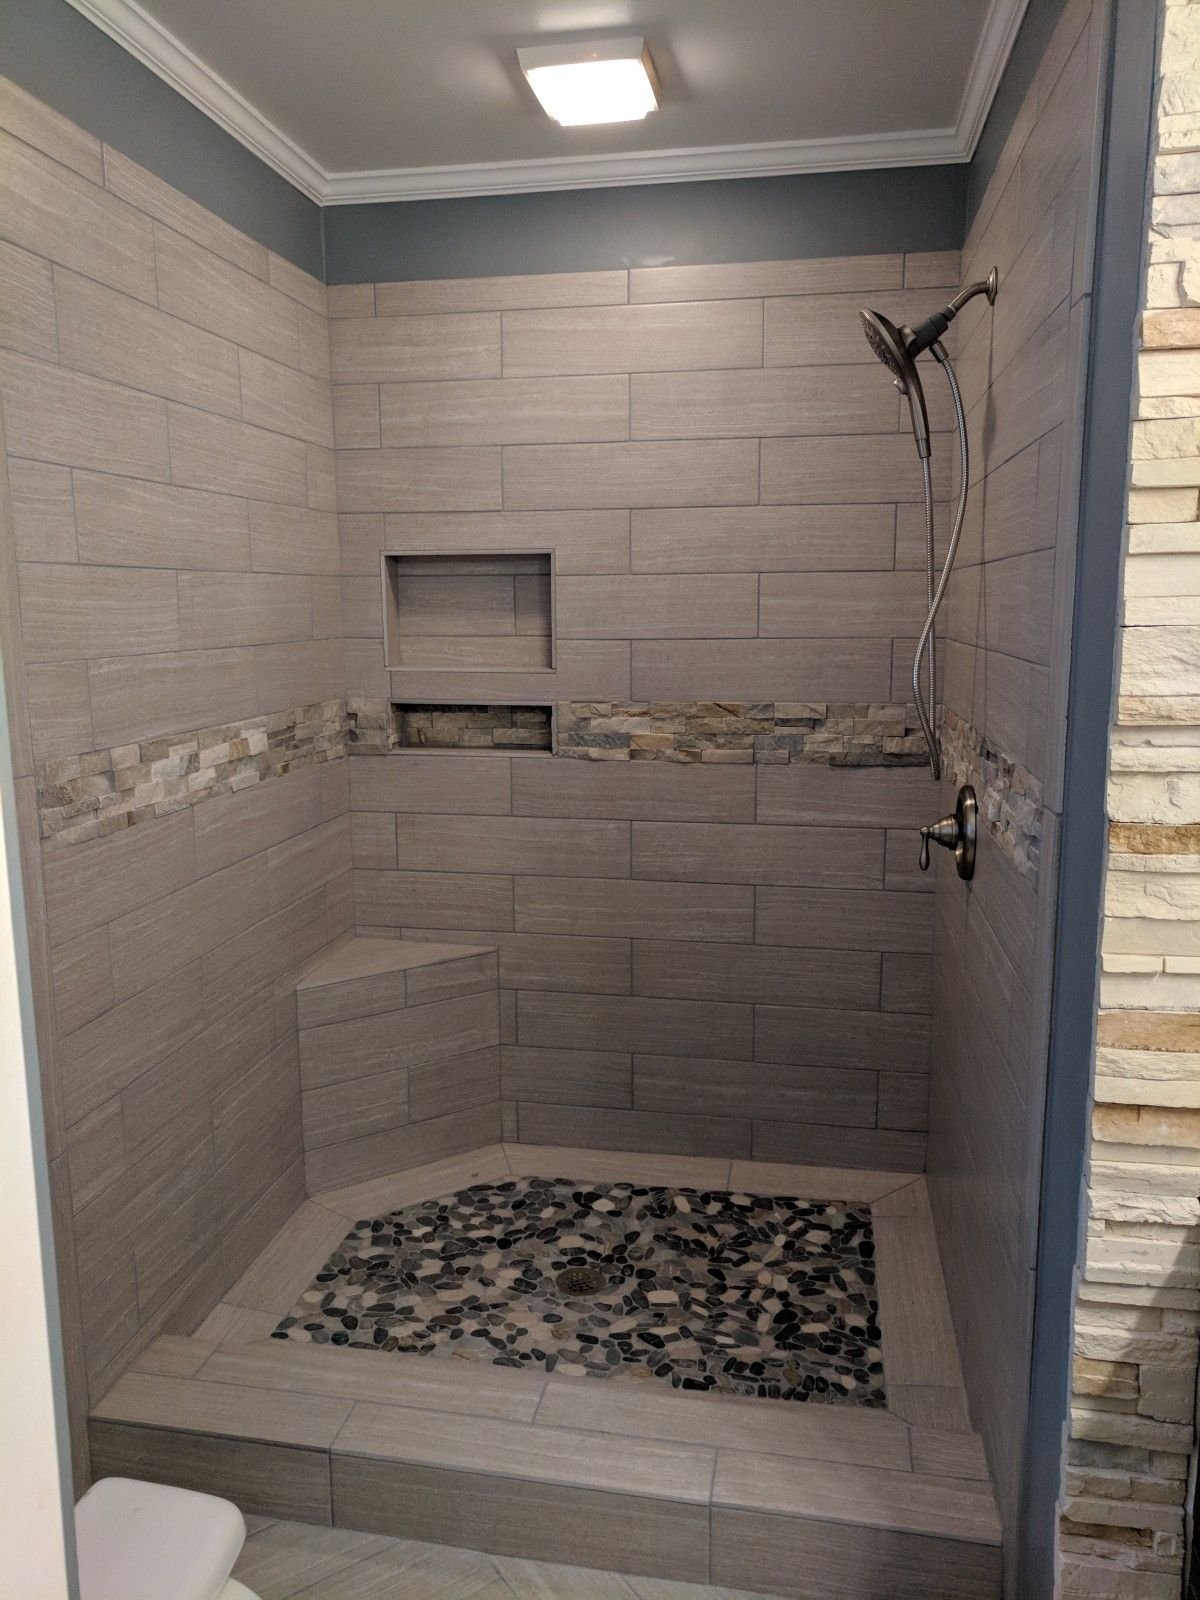 Master Bath Remodel Removed Large Garden Tub And Shower Combo And